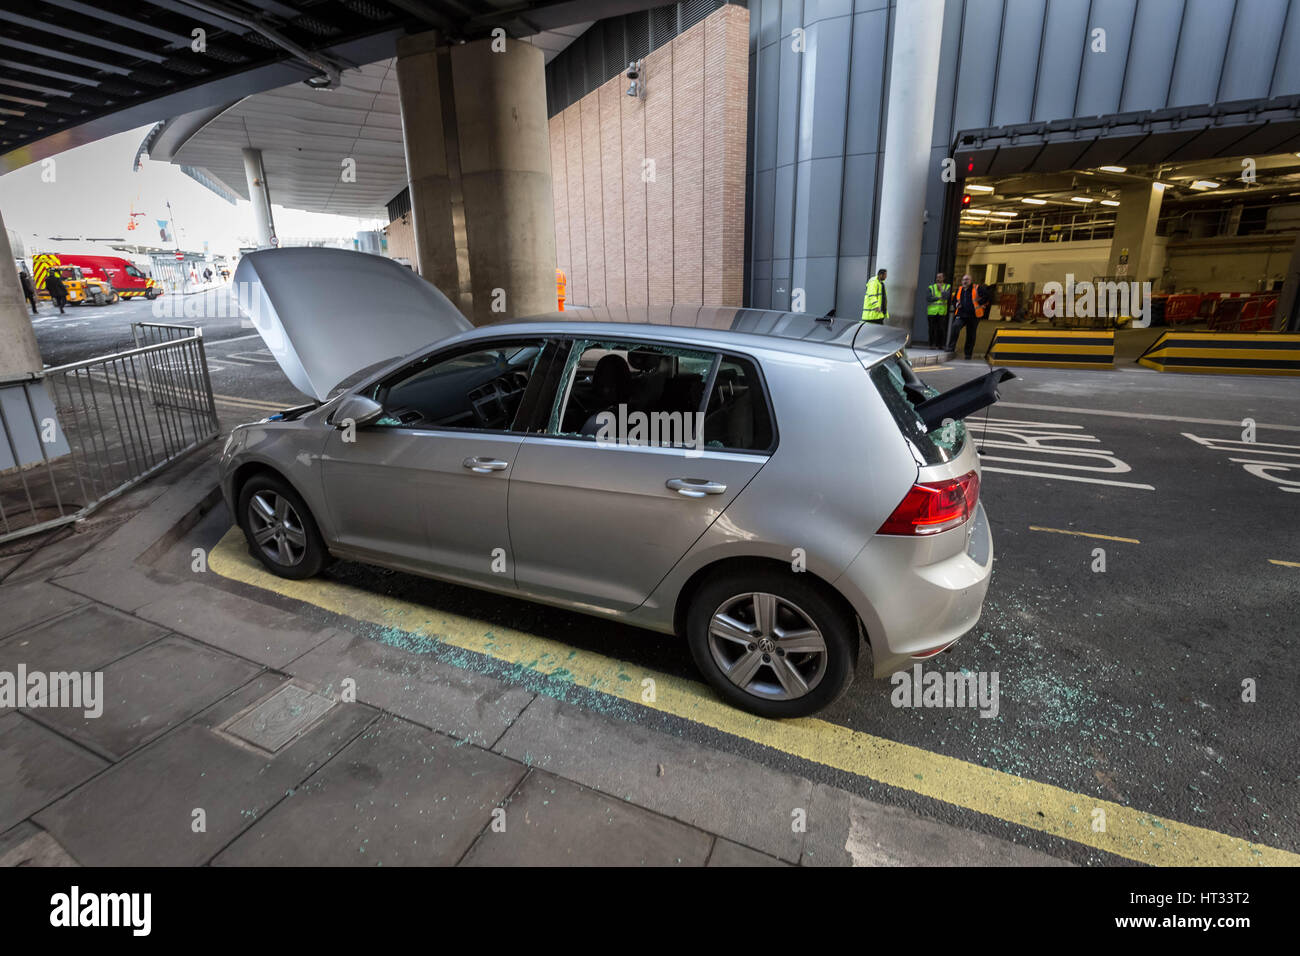 London, UK. 7th March, 2017. London Bridge was evacuated as bomb squad searched a 'suspicious vehicle' close to - Stock Image